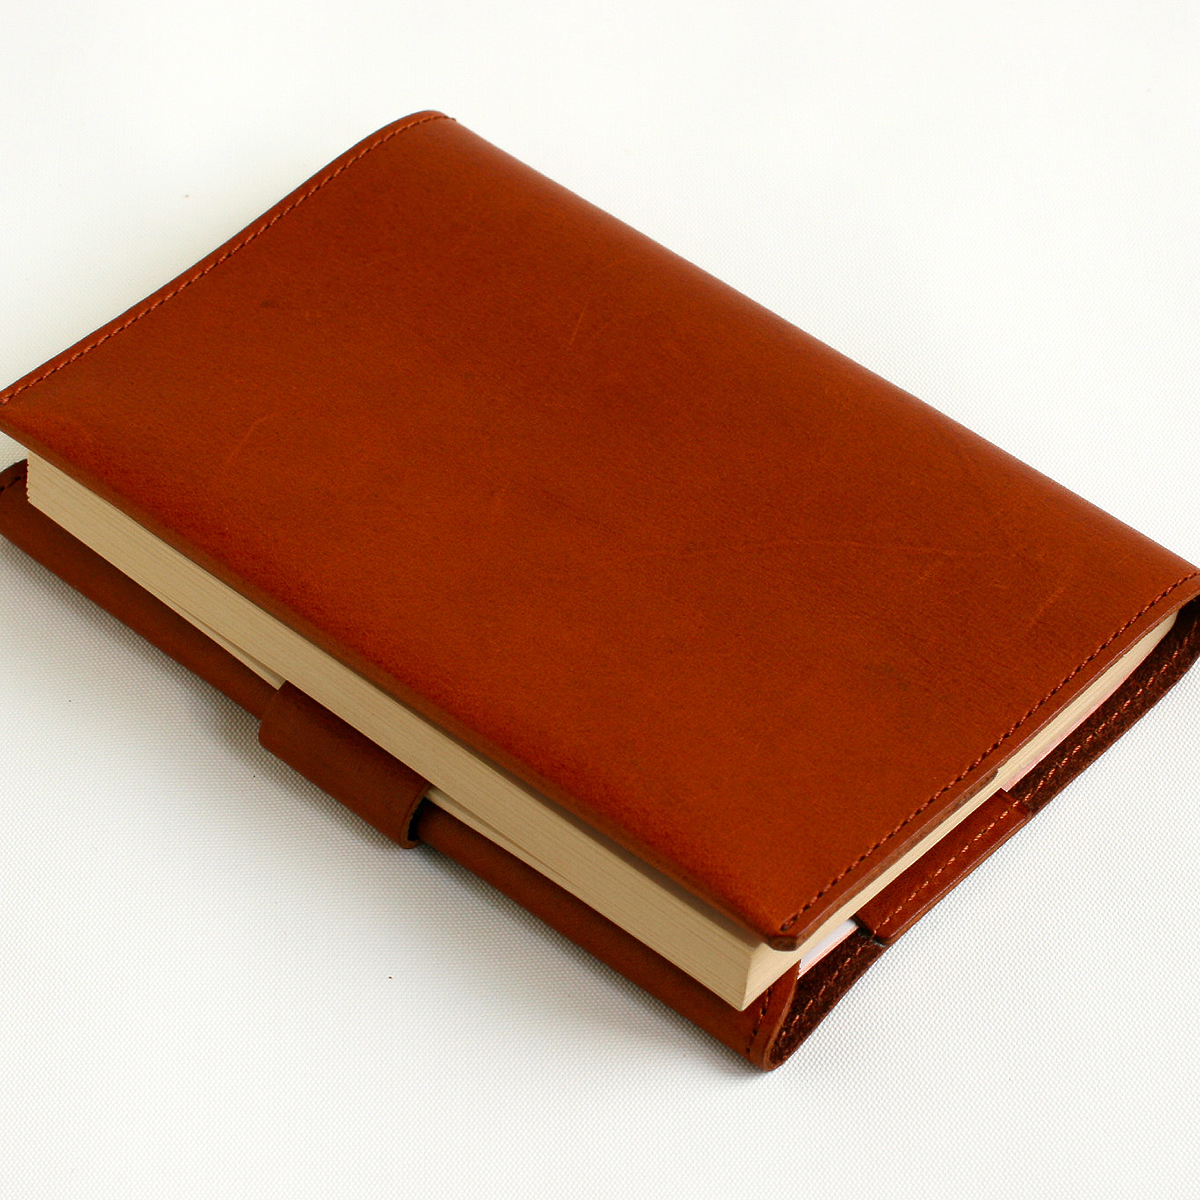 BOOK COVER BASIC brown